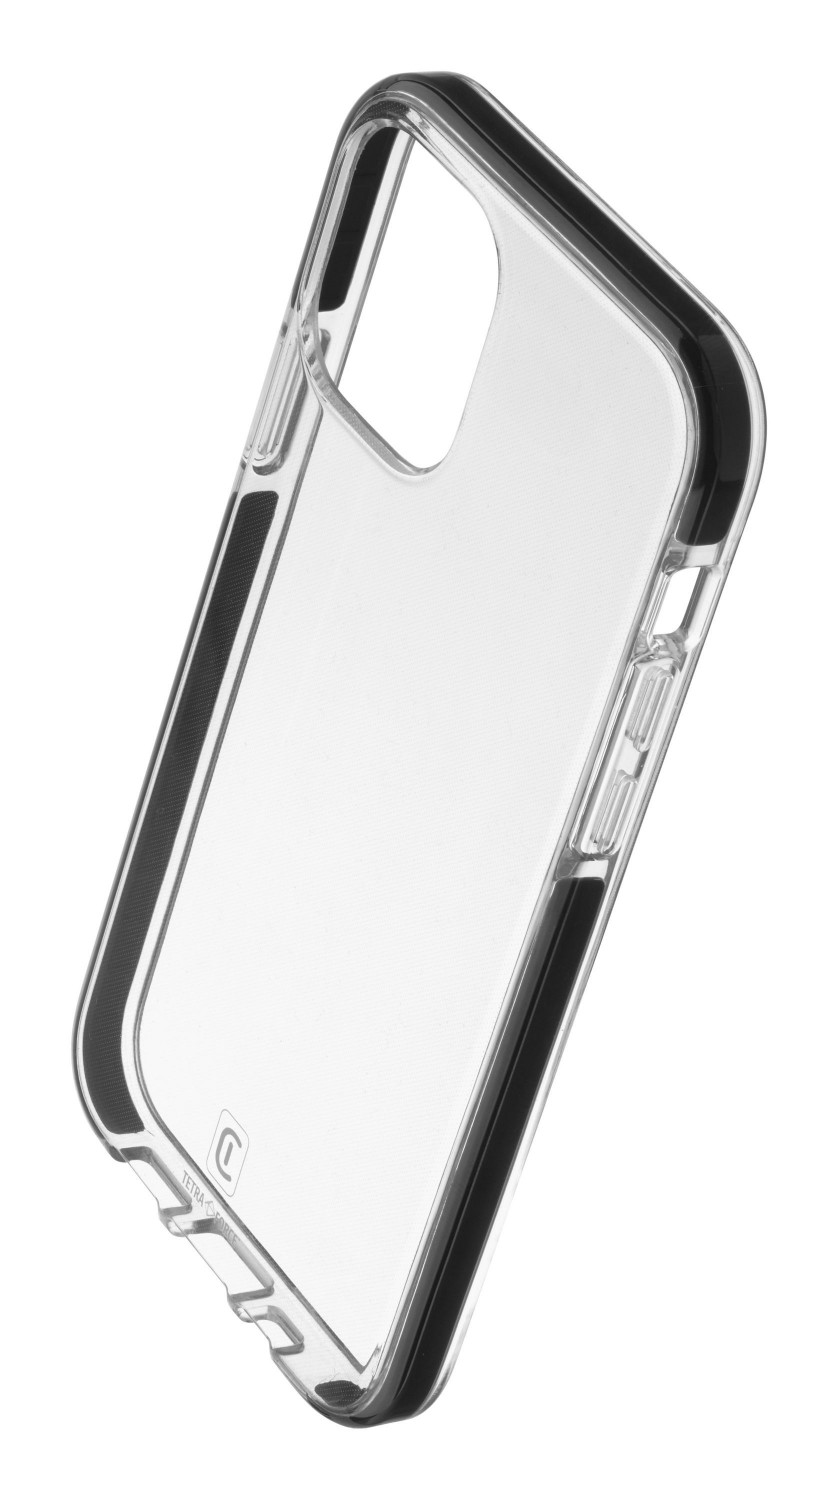 Cellularline Tetra Force Shock-Twist pouzdro, obal, kryt Apple iPhone 12/12 Pro transparent